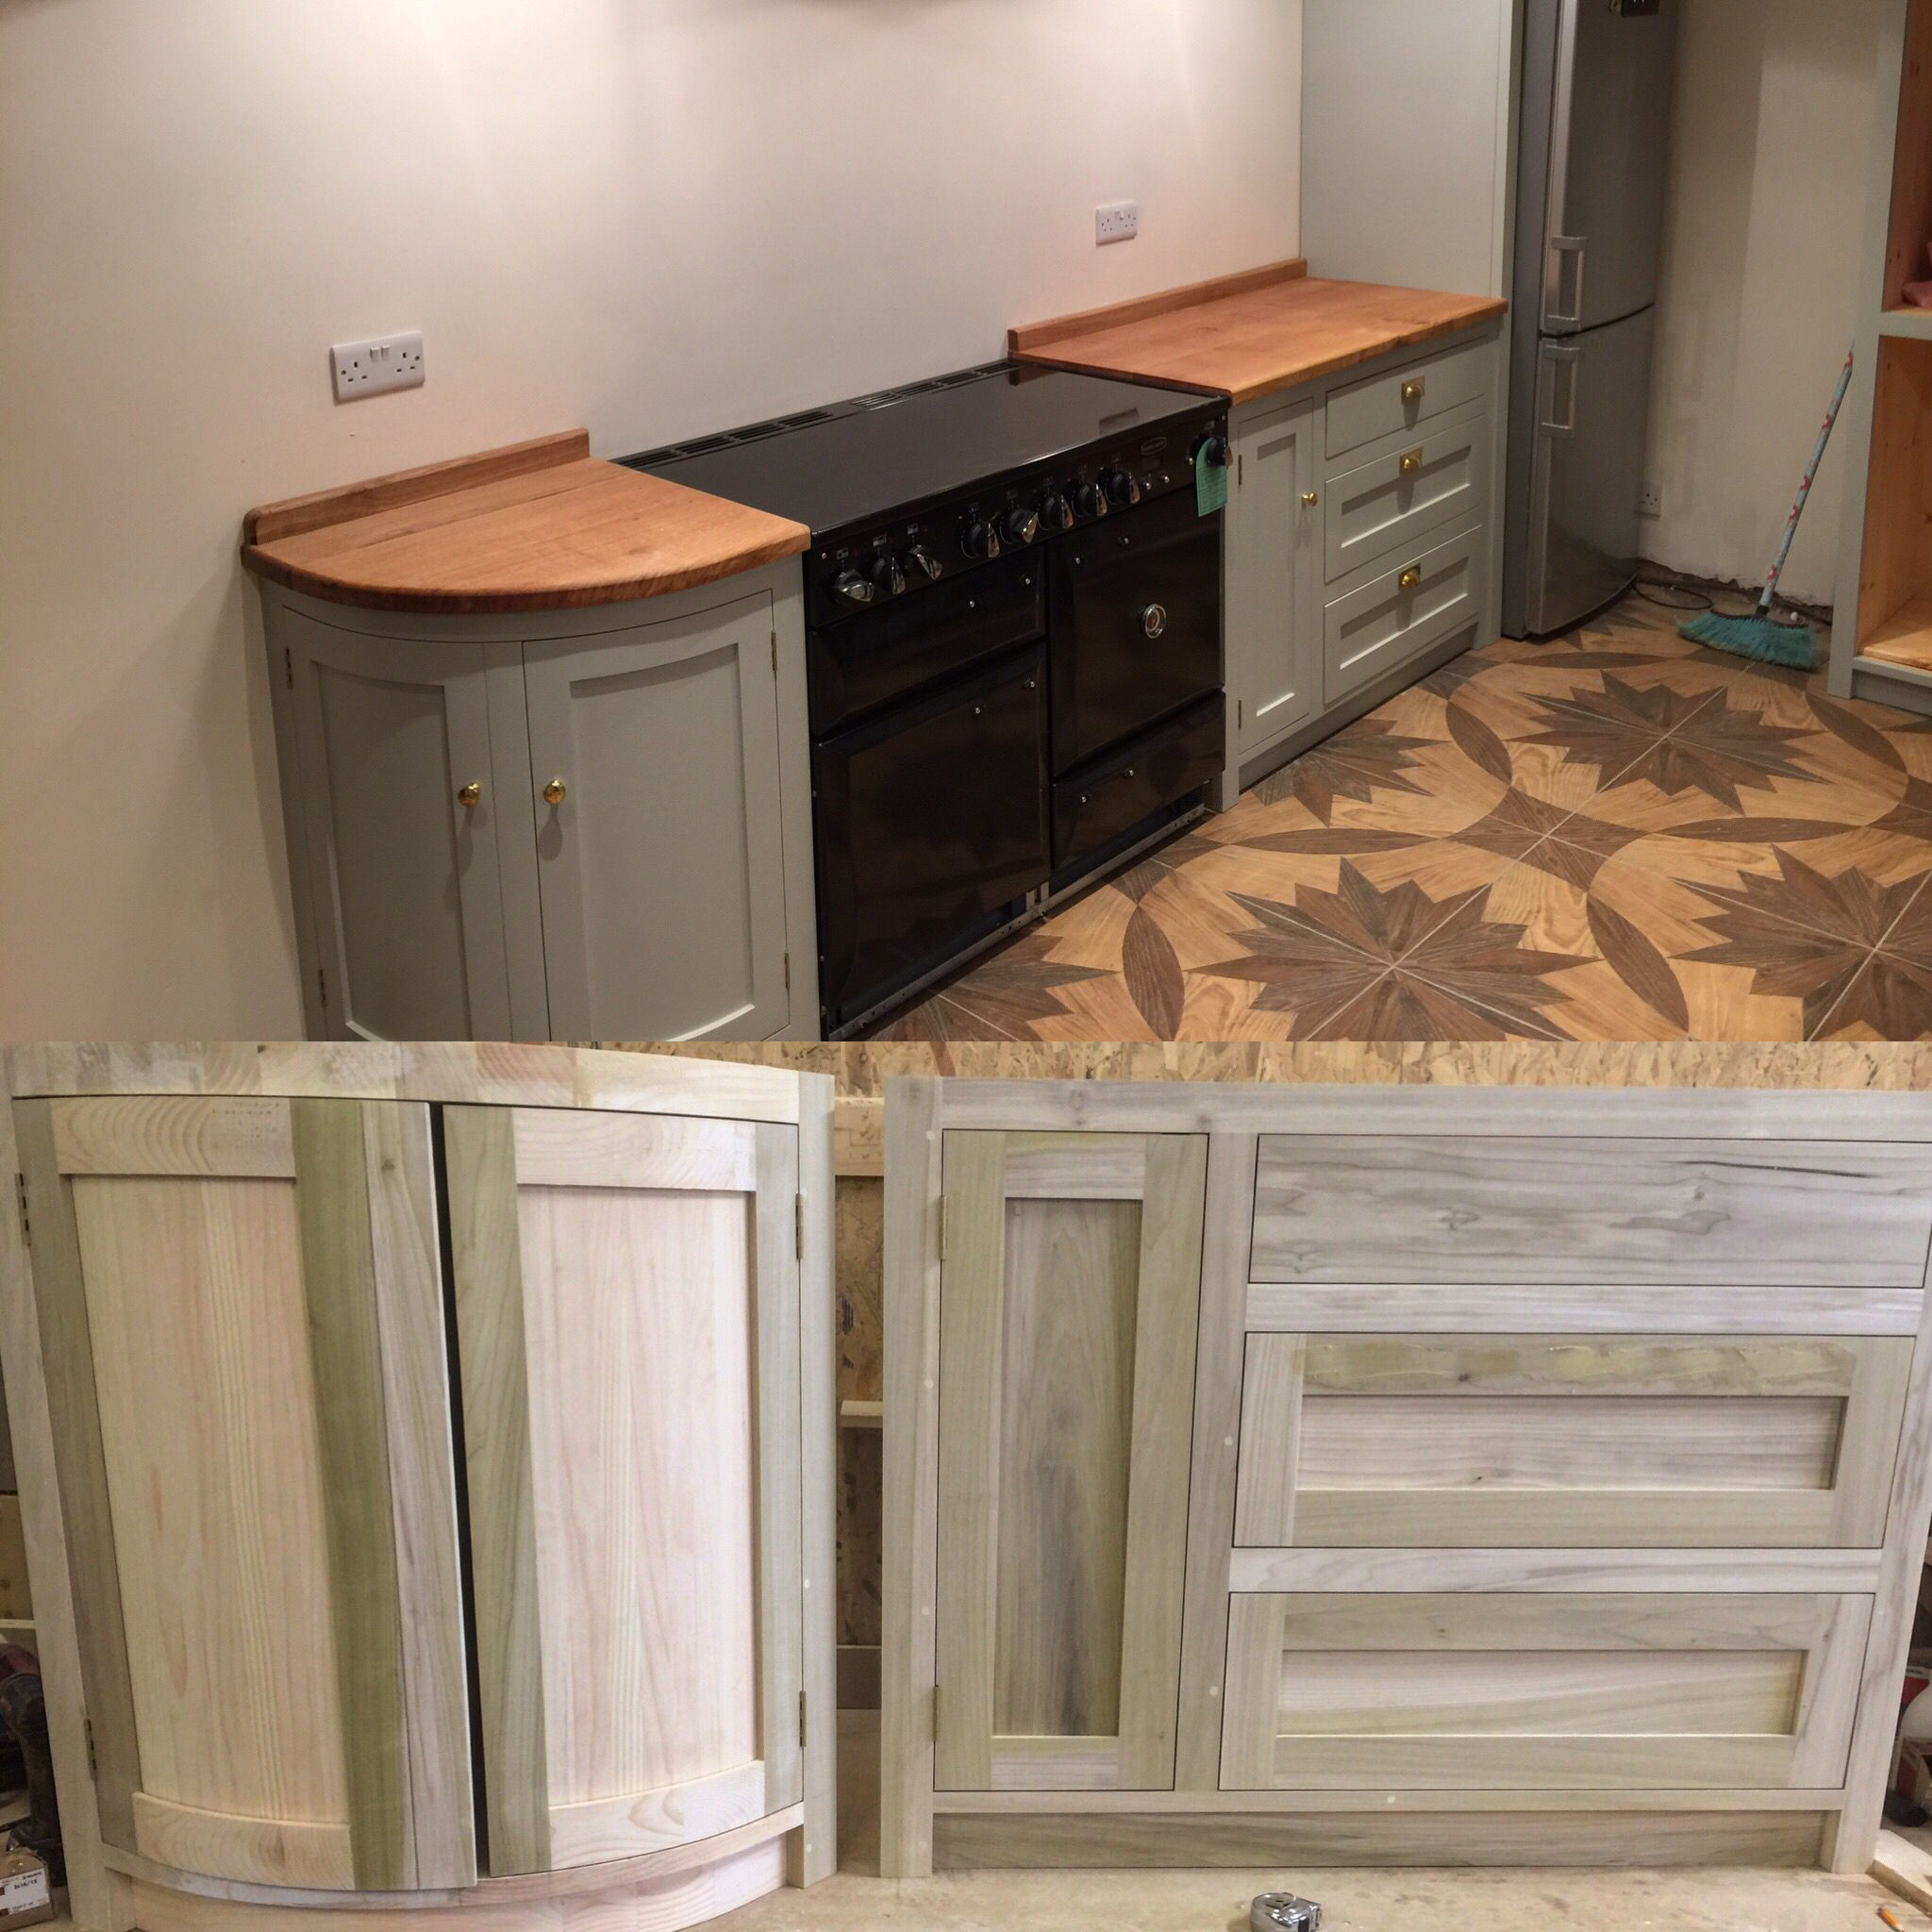 Our Handmade Kitchens Which Are Solid Timber Construction Throughout Kitchen Cabinet Design Kitchen Design Kitchen Cabinets